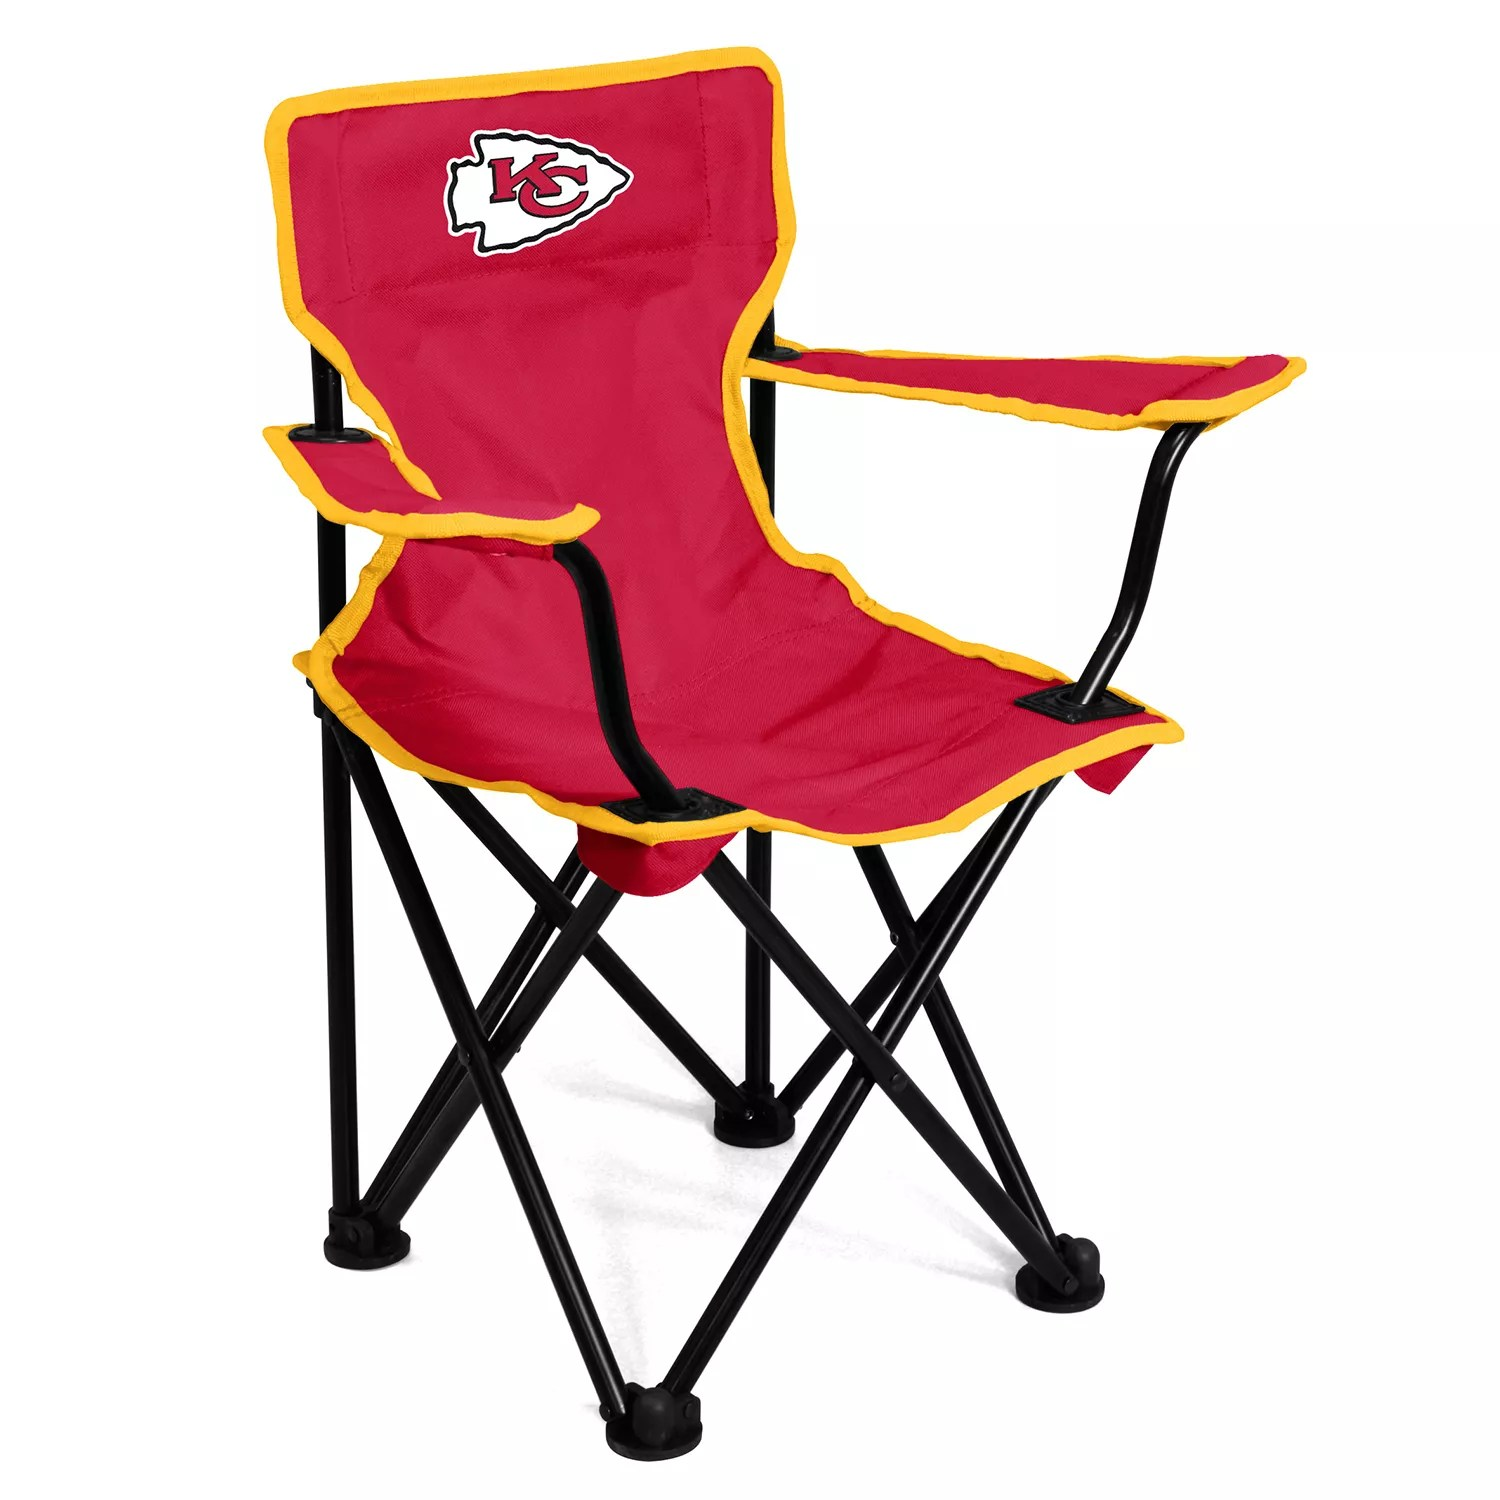 portable folding chairs upholstered lounge chair logo brands kansas city chiefs toddler